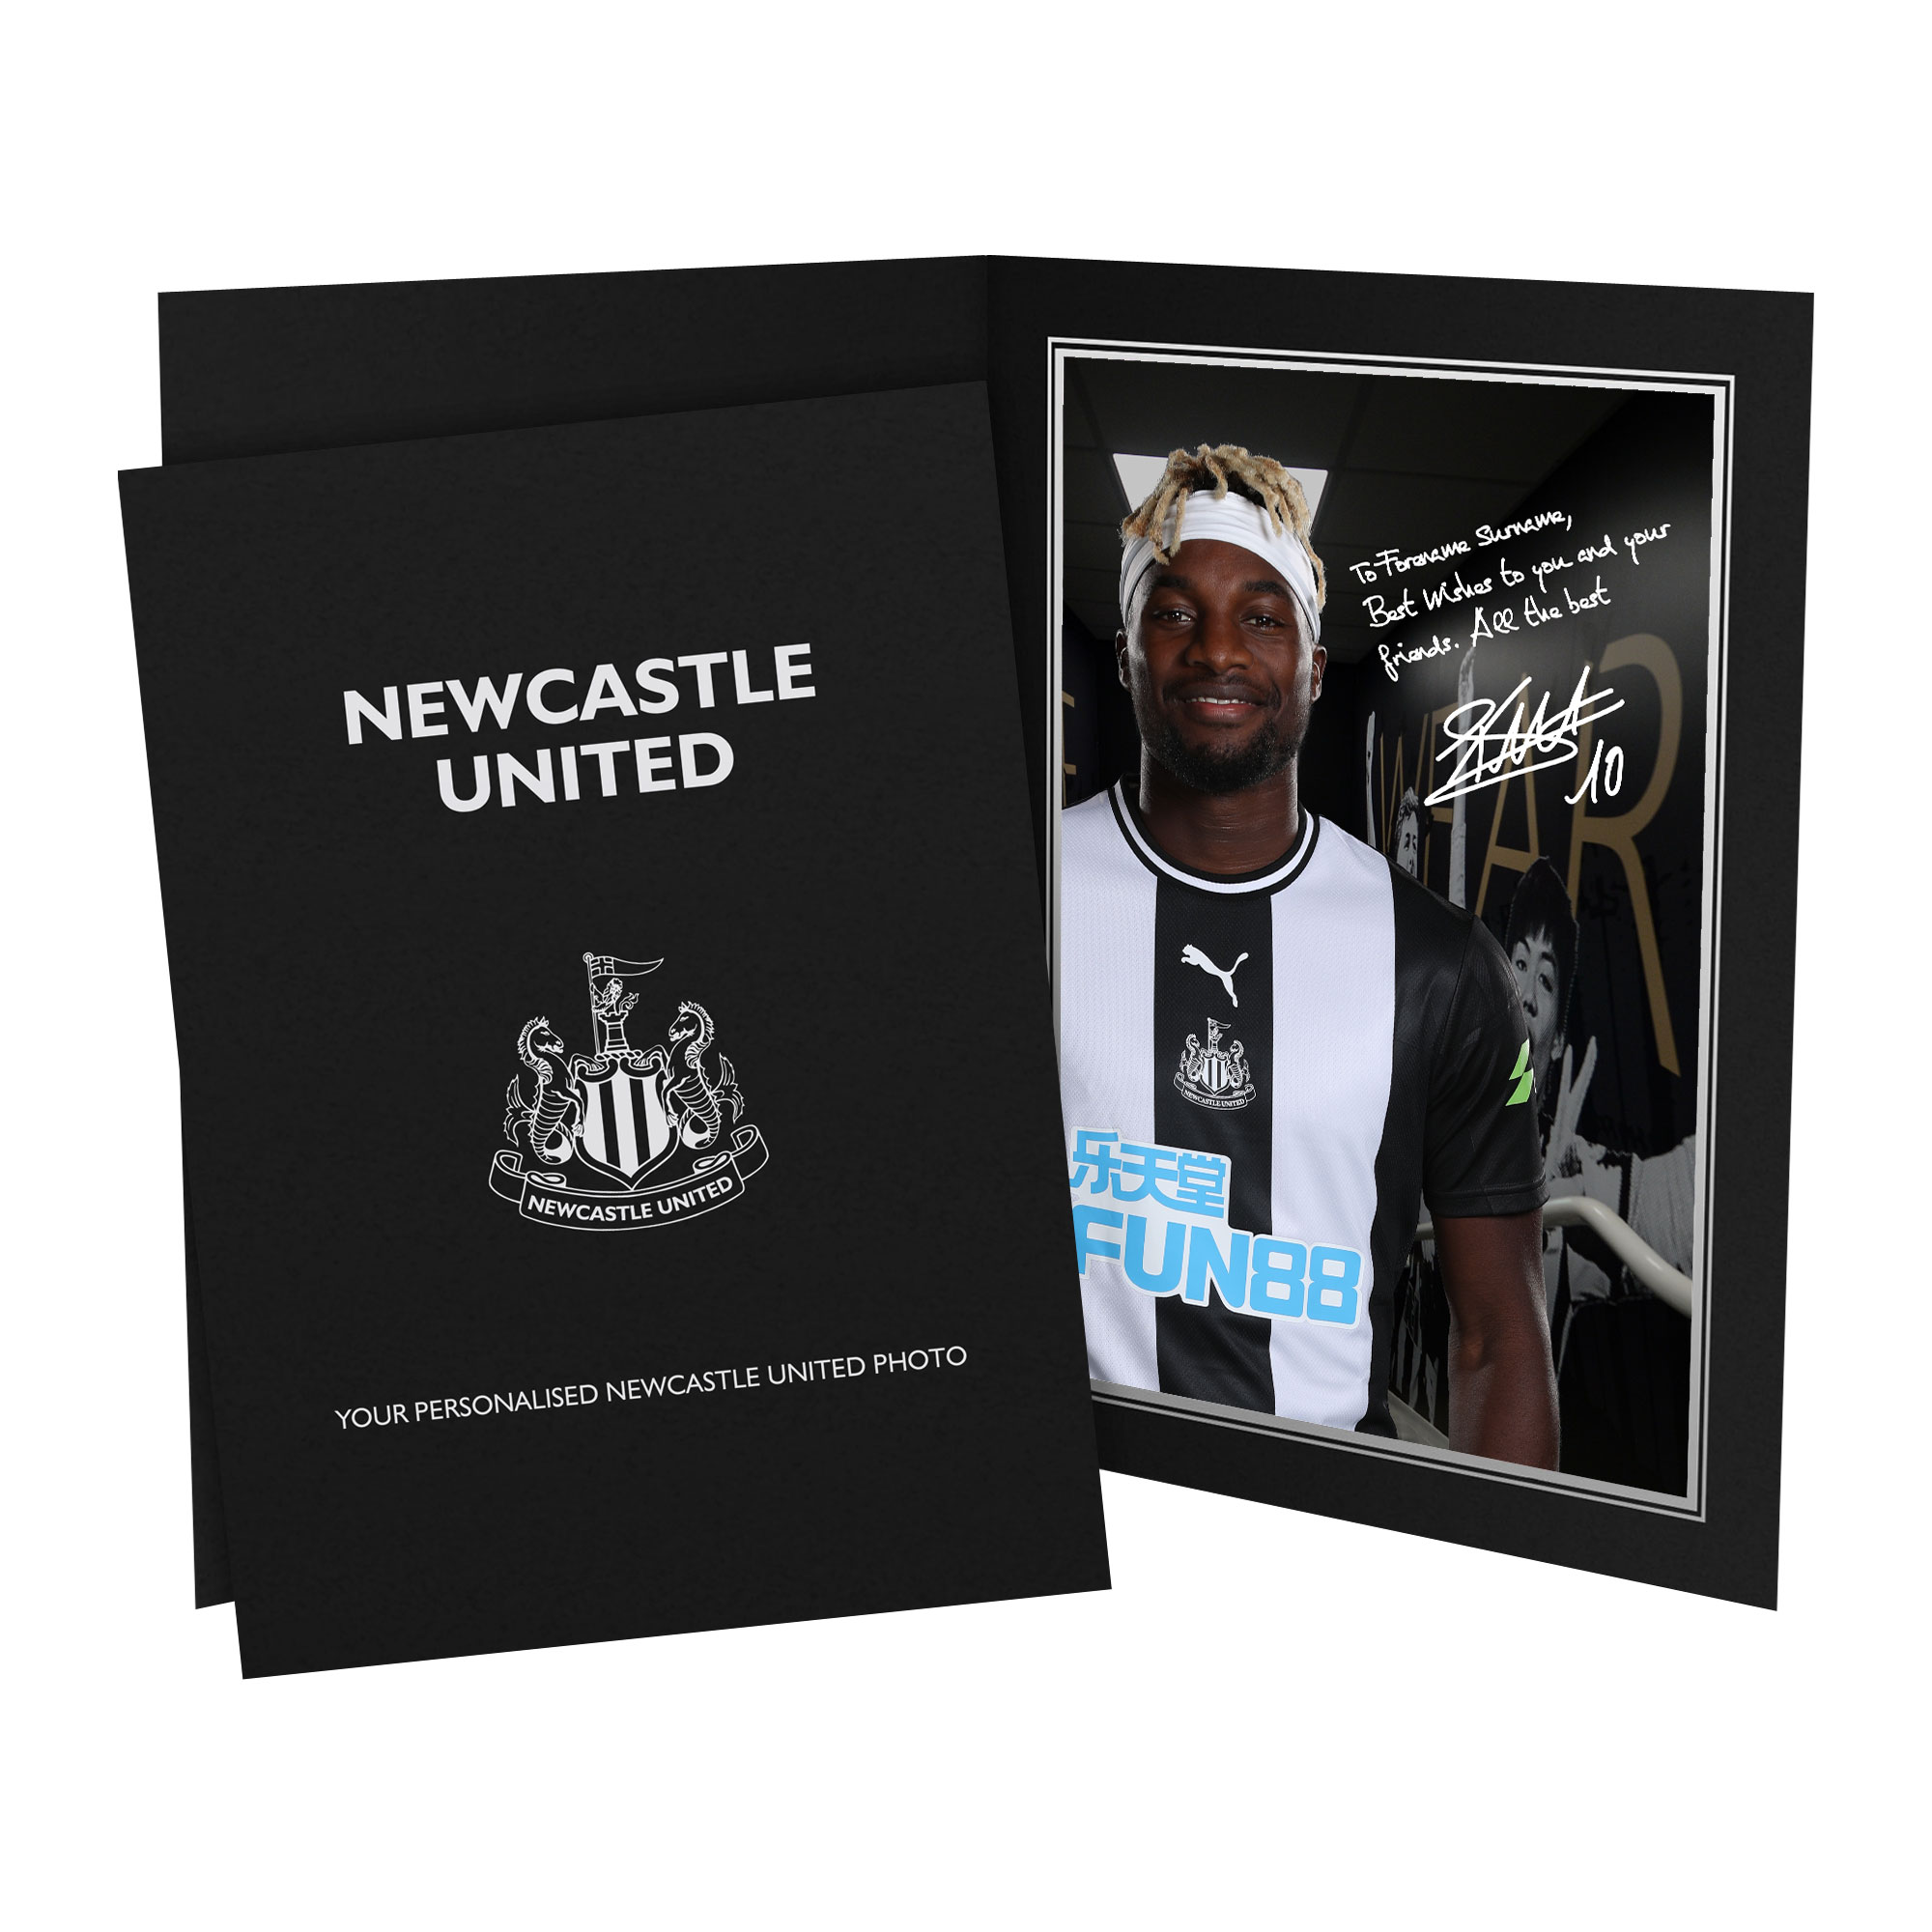 Newcastle United FC Saint-Maximin Autograph Photo Folder